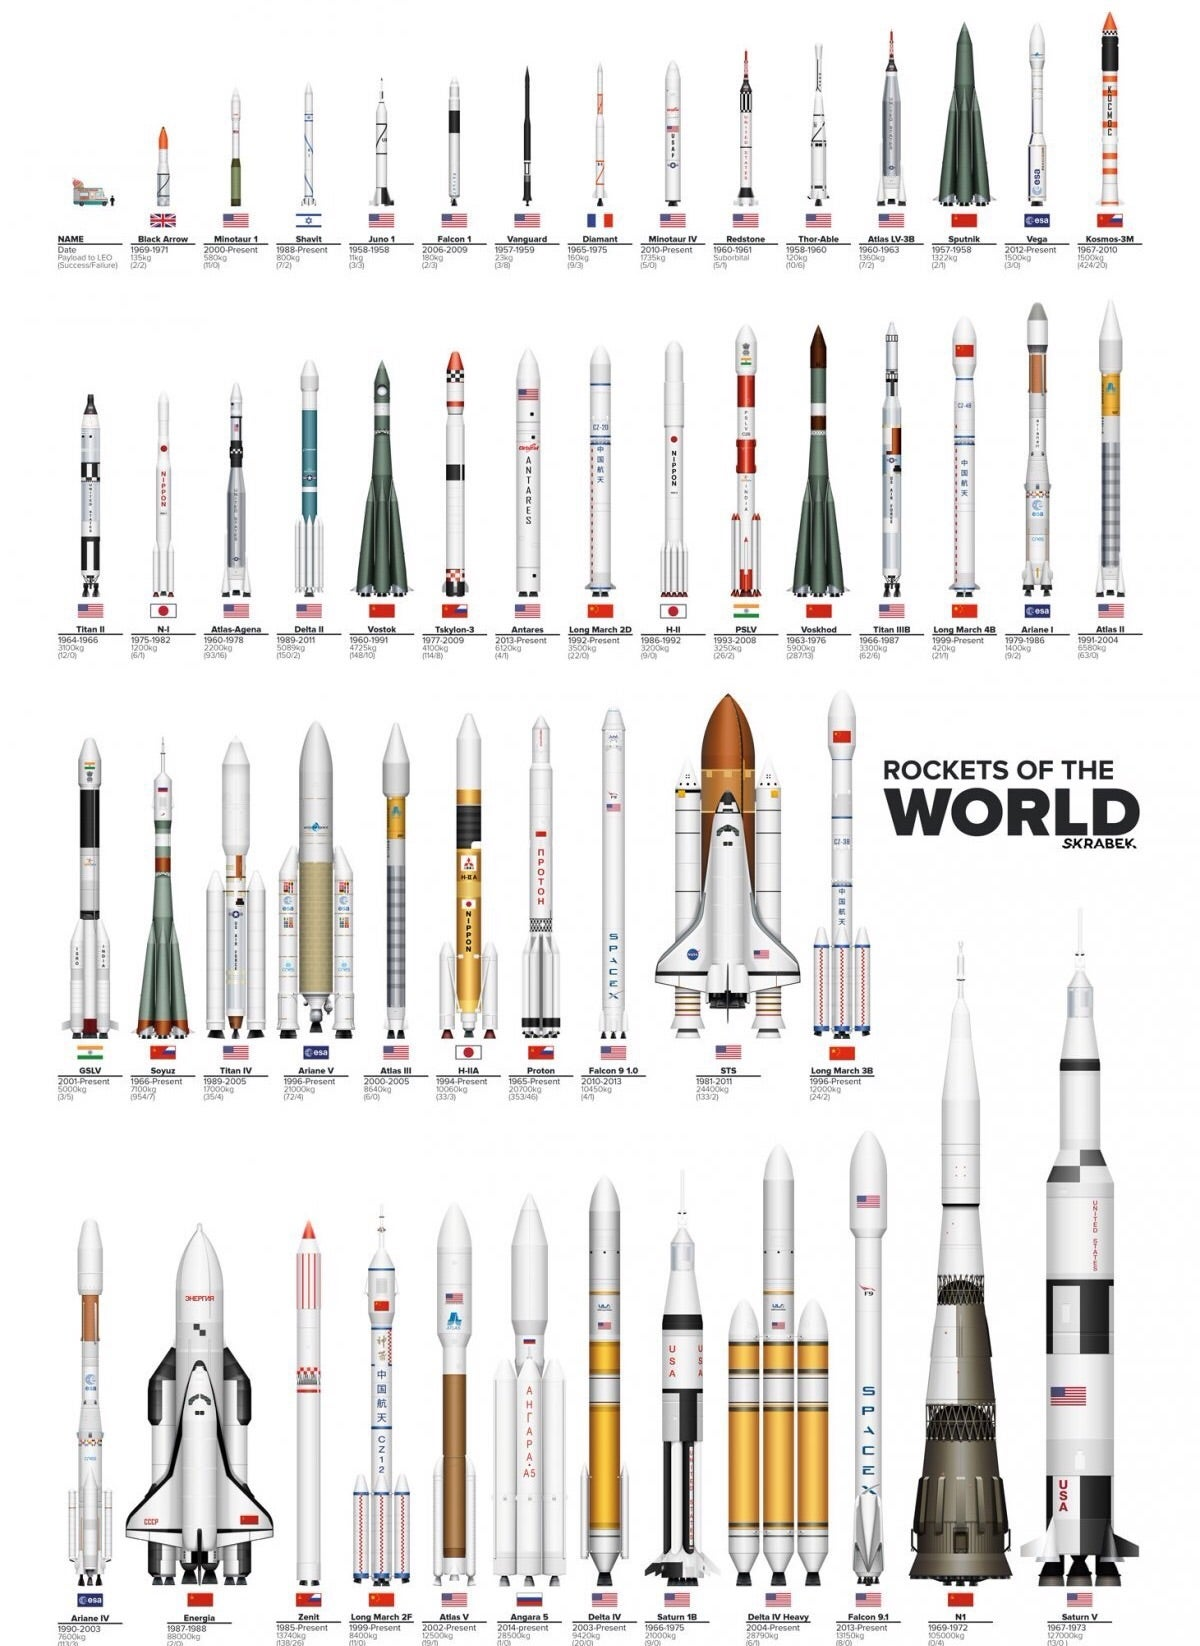 The rockets of the world in one cool graphic